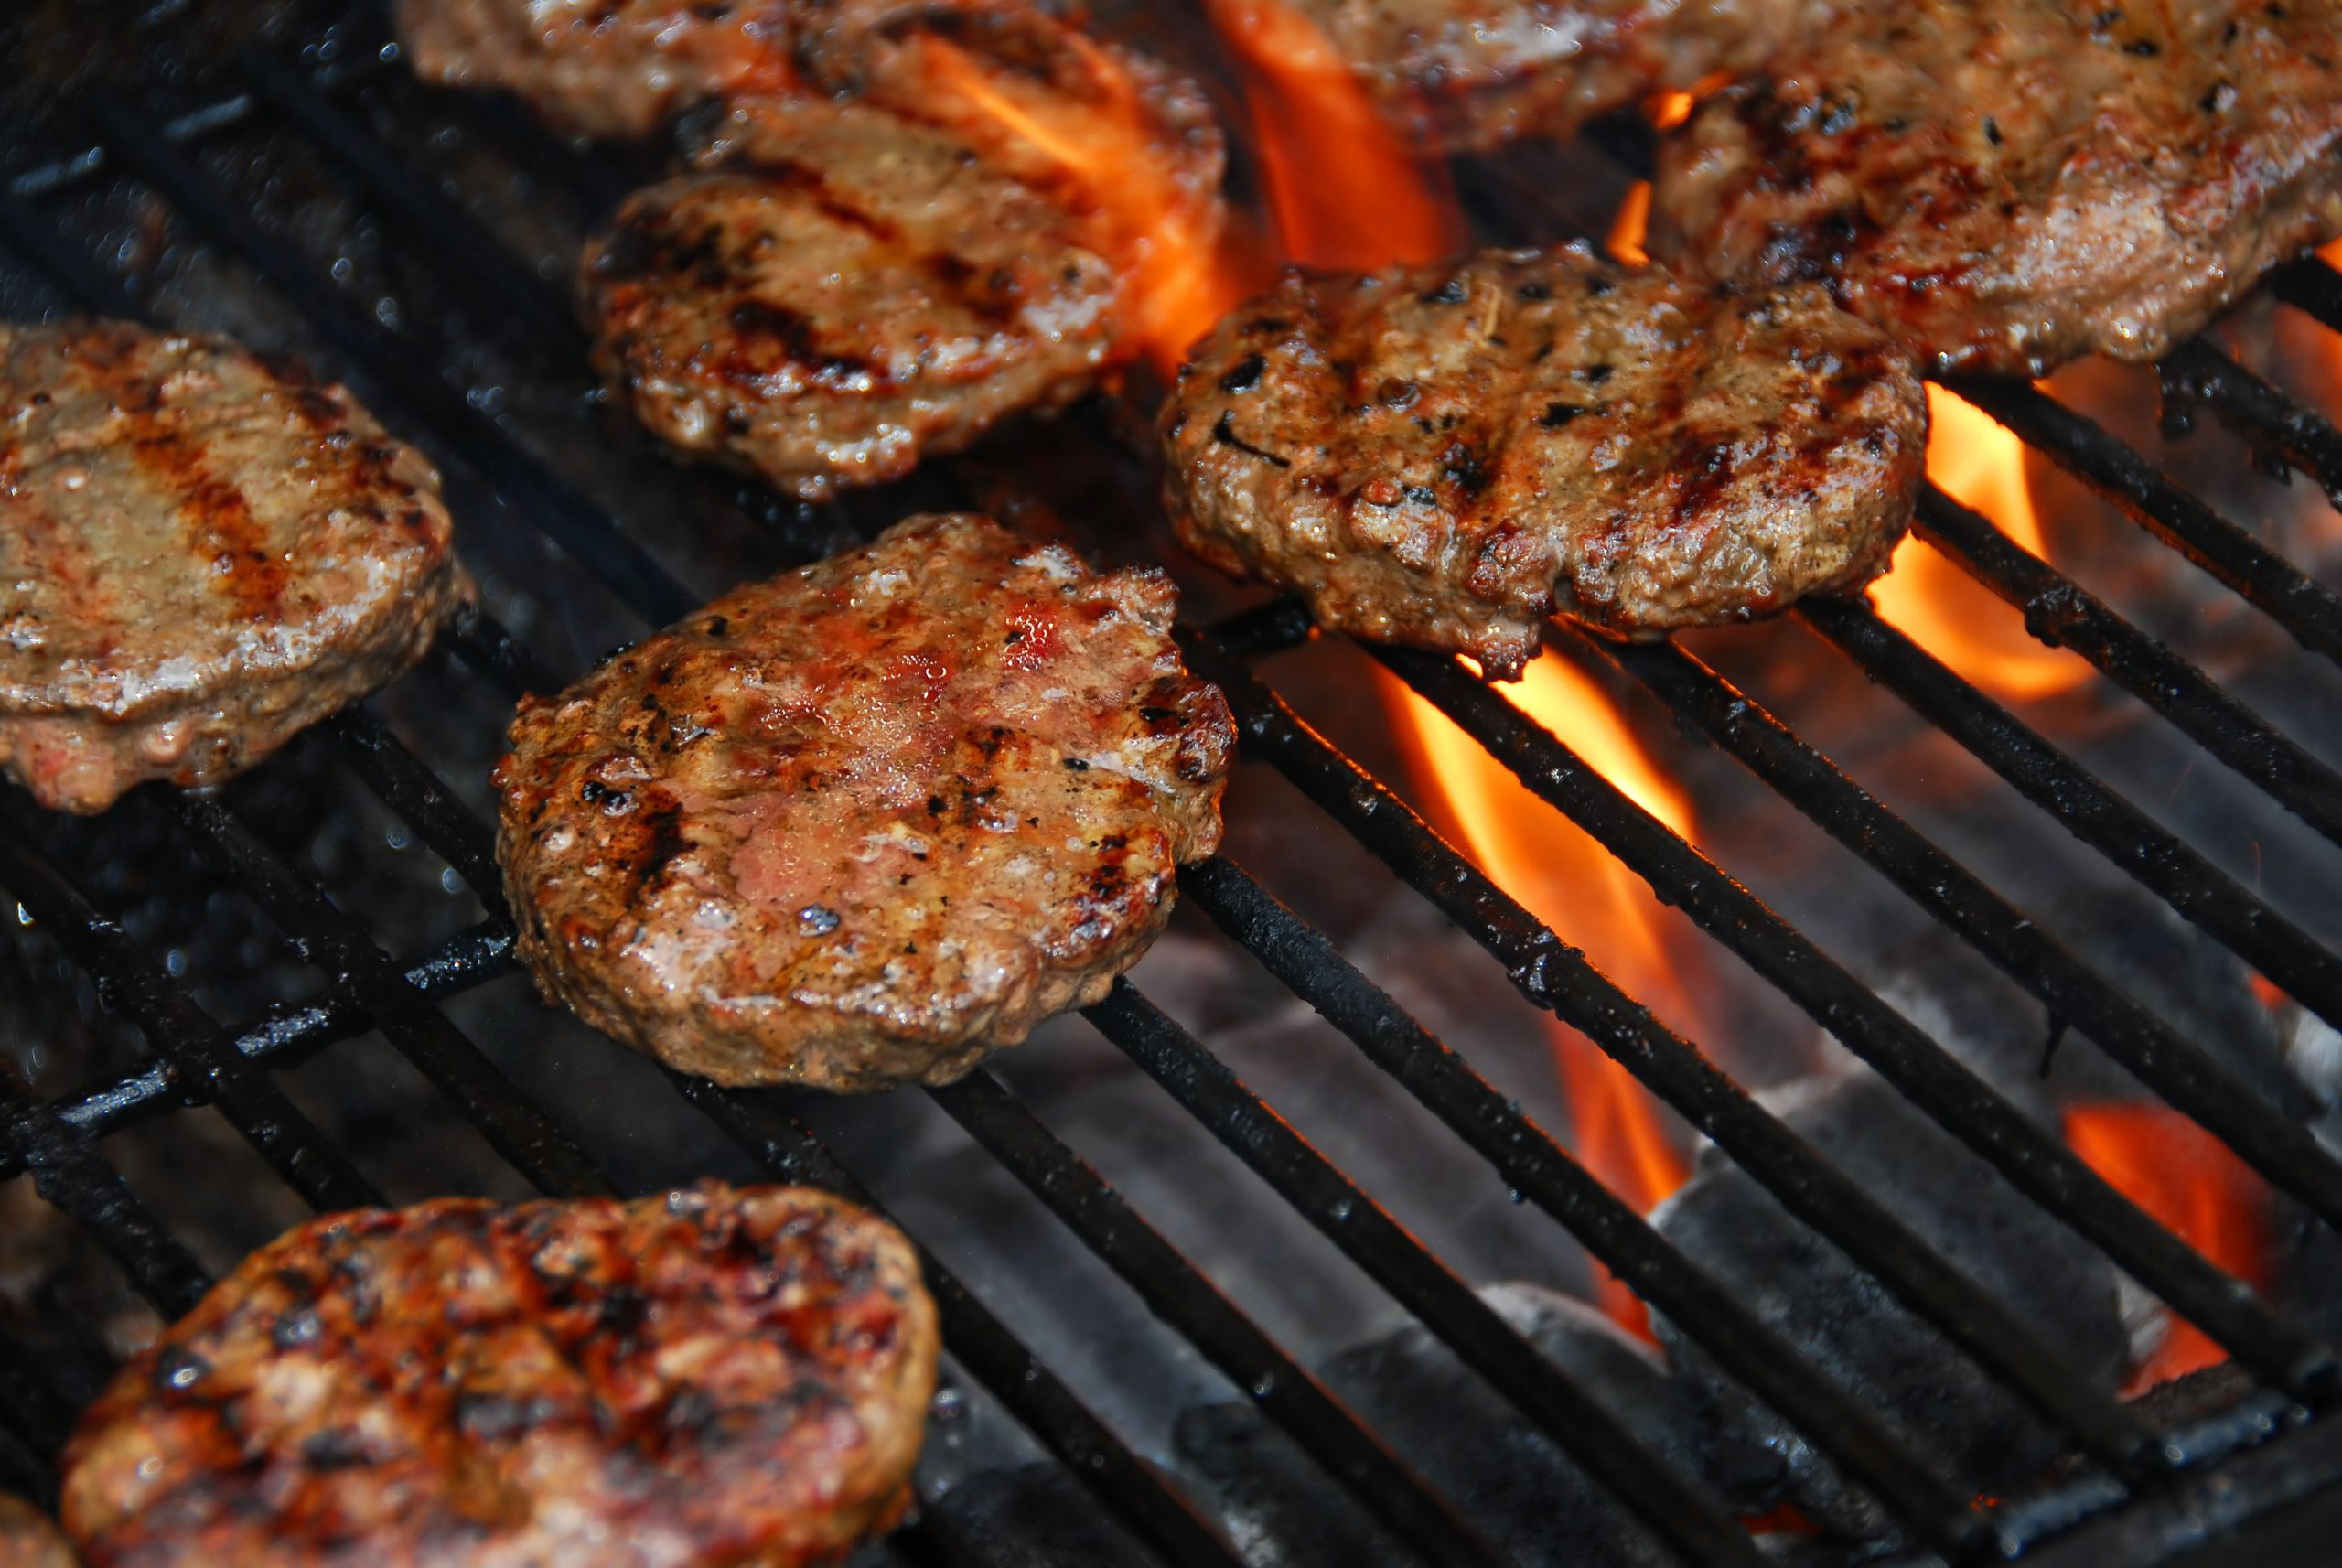 Hamburgers on grill for outdoor cookout